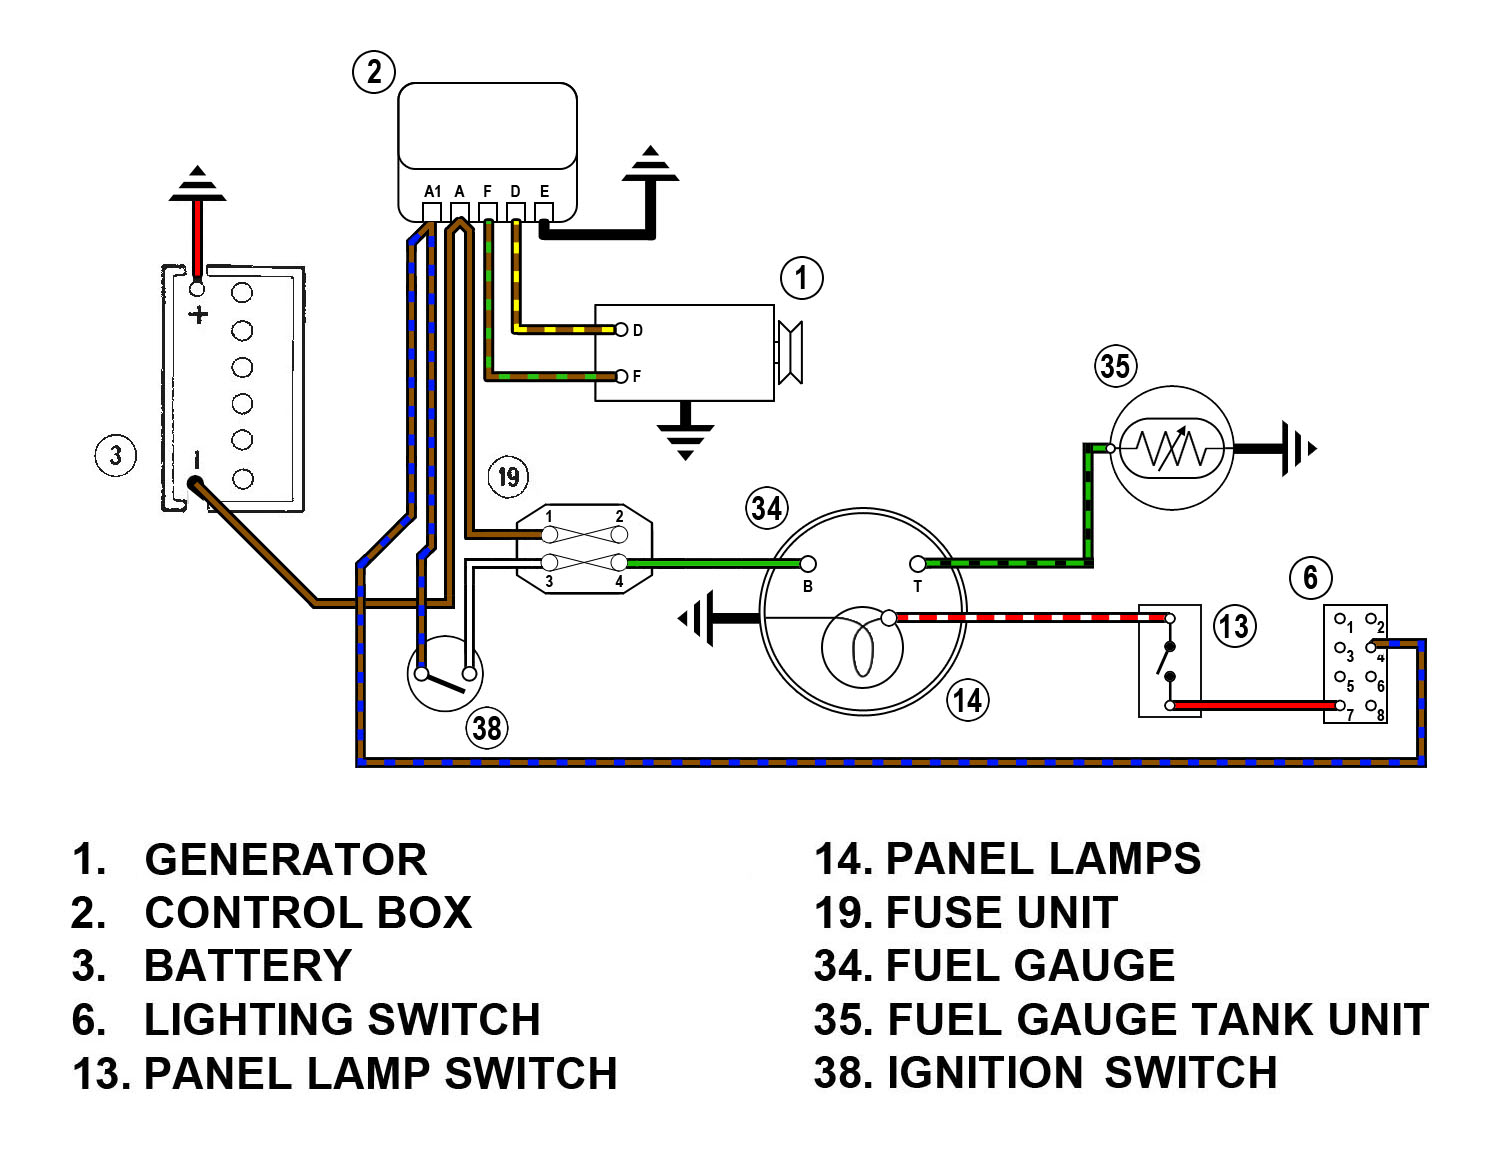 Fuel Sender Wiring Diagram - Get Rid Of Wiring Diagram Problem on 1994 isuzu npr blower motor wiring diagram, isuzu npr tail light wiring diagram, isuzu npr fuel tank diagram, isuzu axiom fuel pump wiring diagram, isuzu npr relay diagram, isuzu npr fuse box diagram, isuzu npr diesel fuel pump, isuzu npr abs wiring diagram,